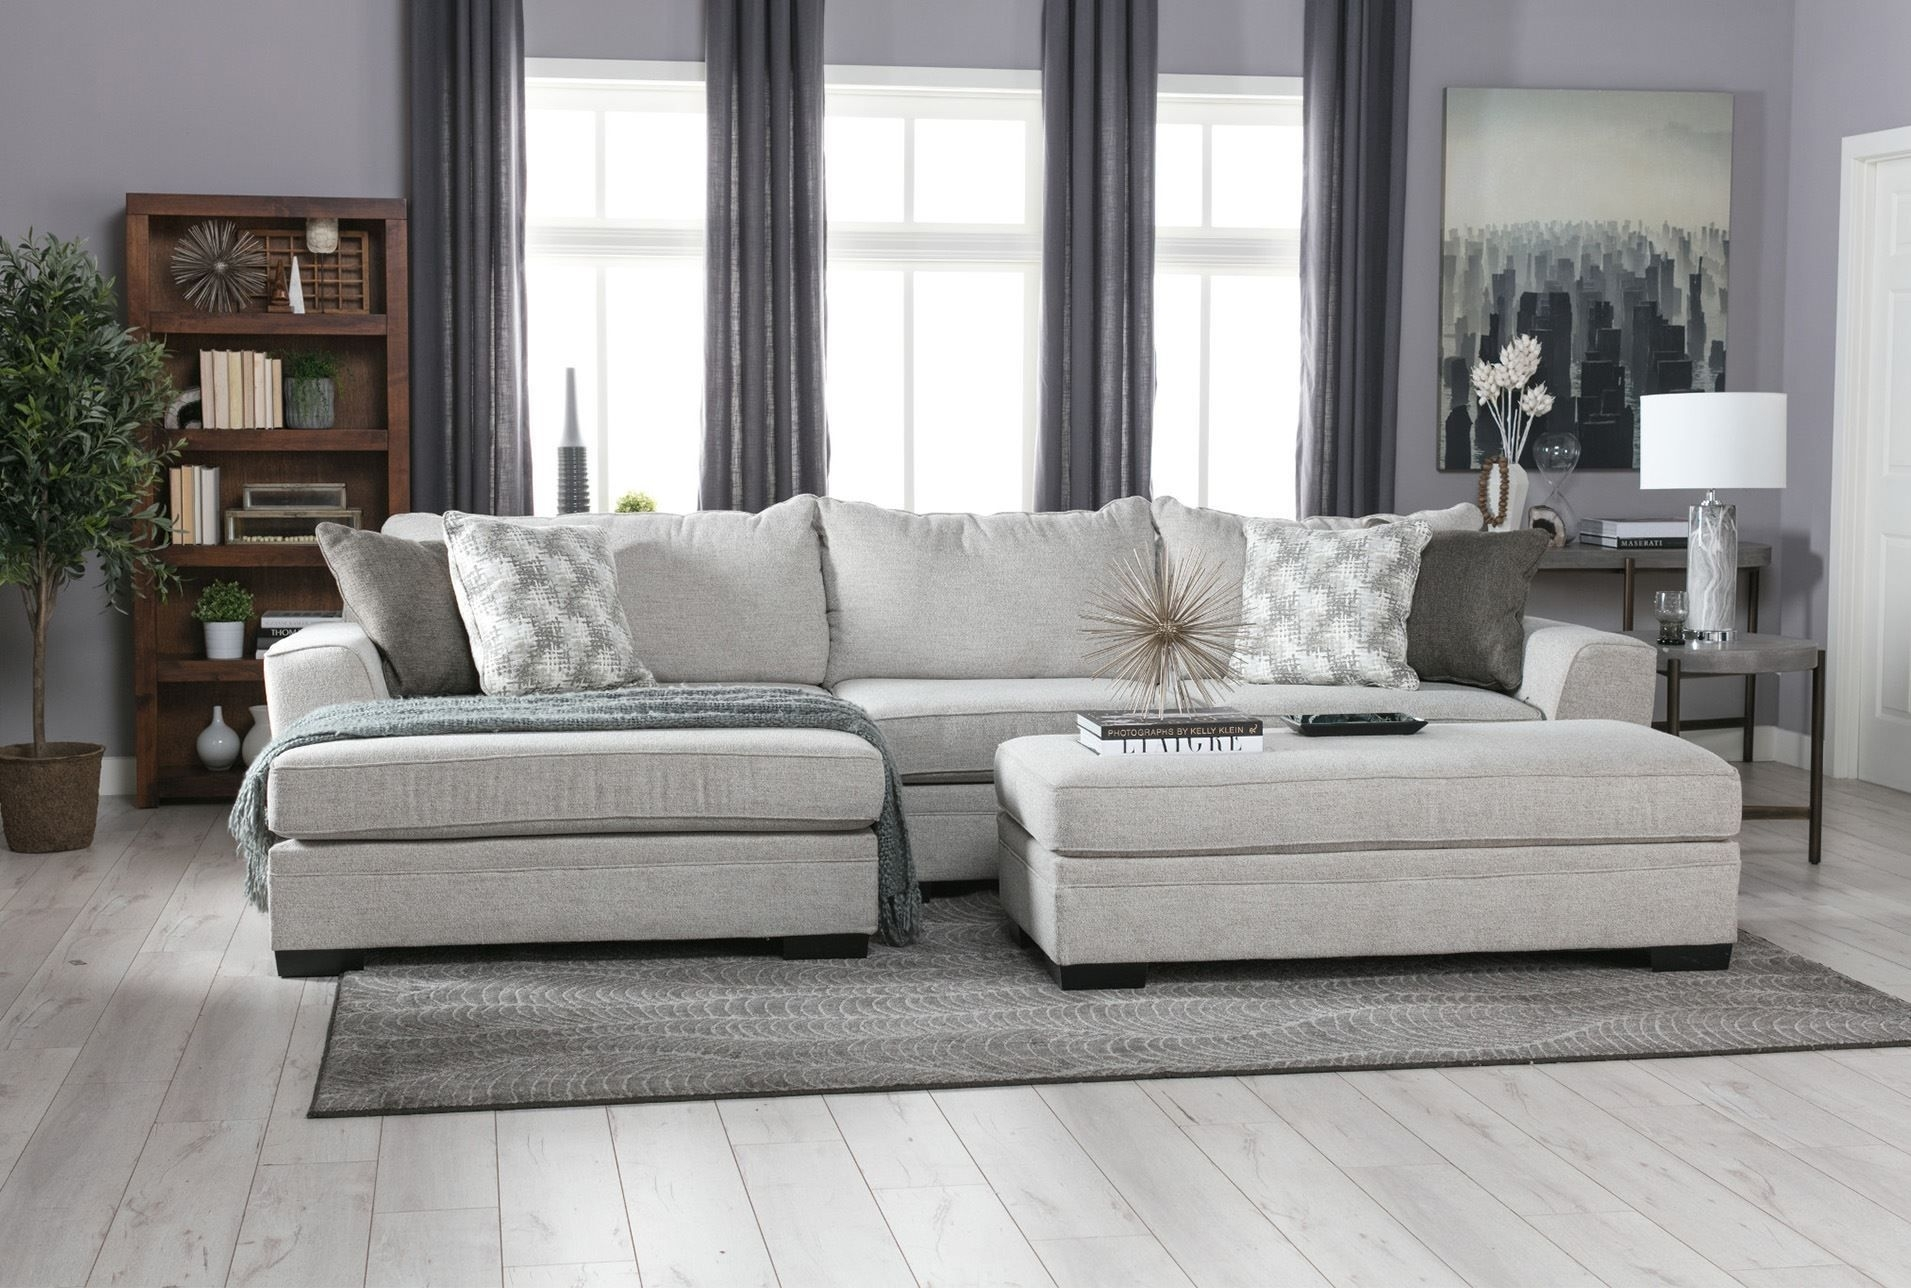 Delano 2 Piece Sectional W/laf Oversized Chaise | Sylvia Son For Delano 2 Piece Sectionals With Laf Oversized Chaise (Image 11 of 25)